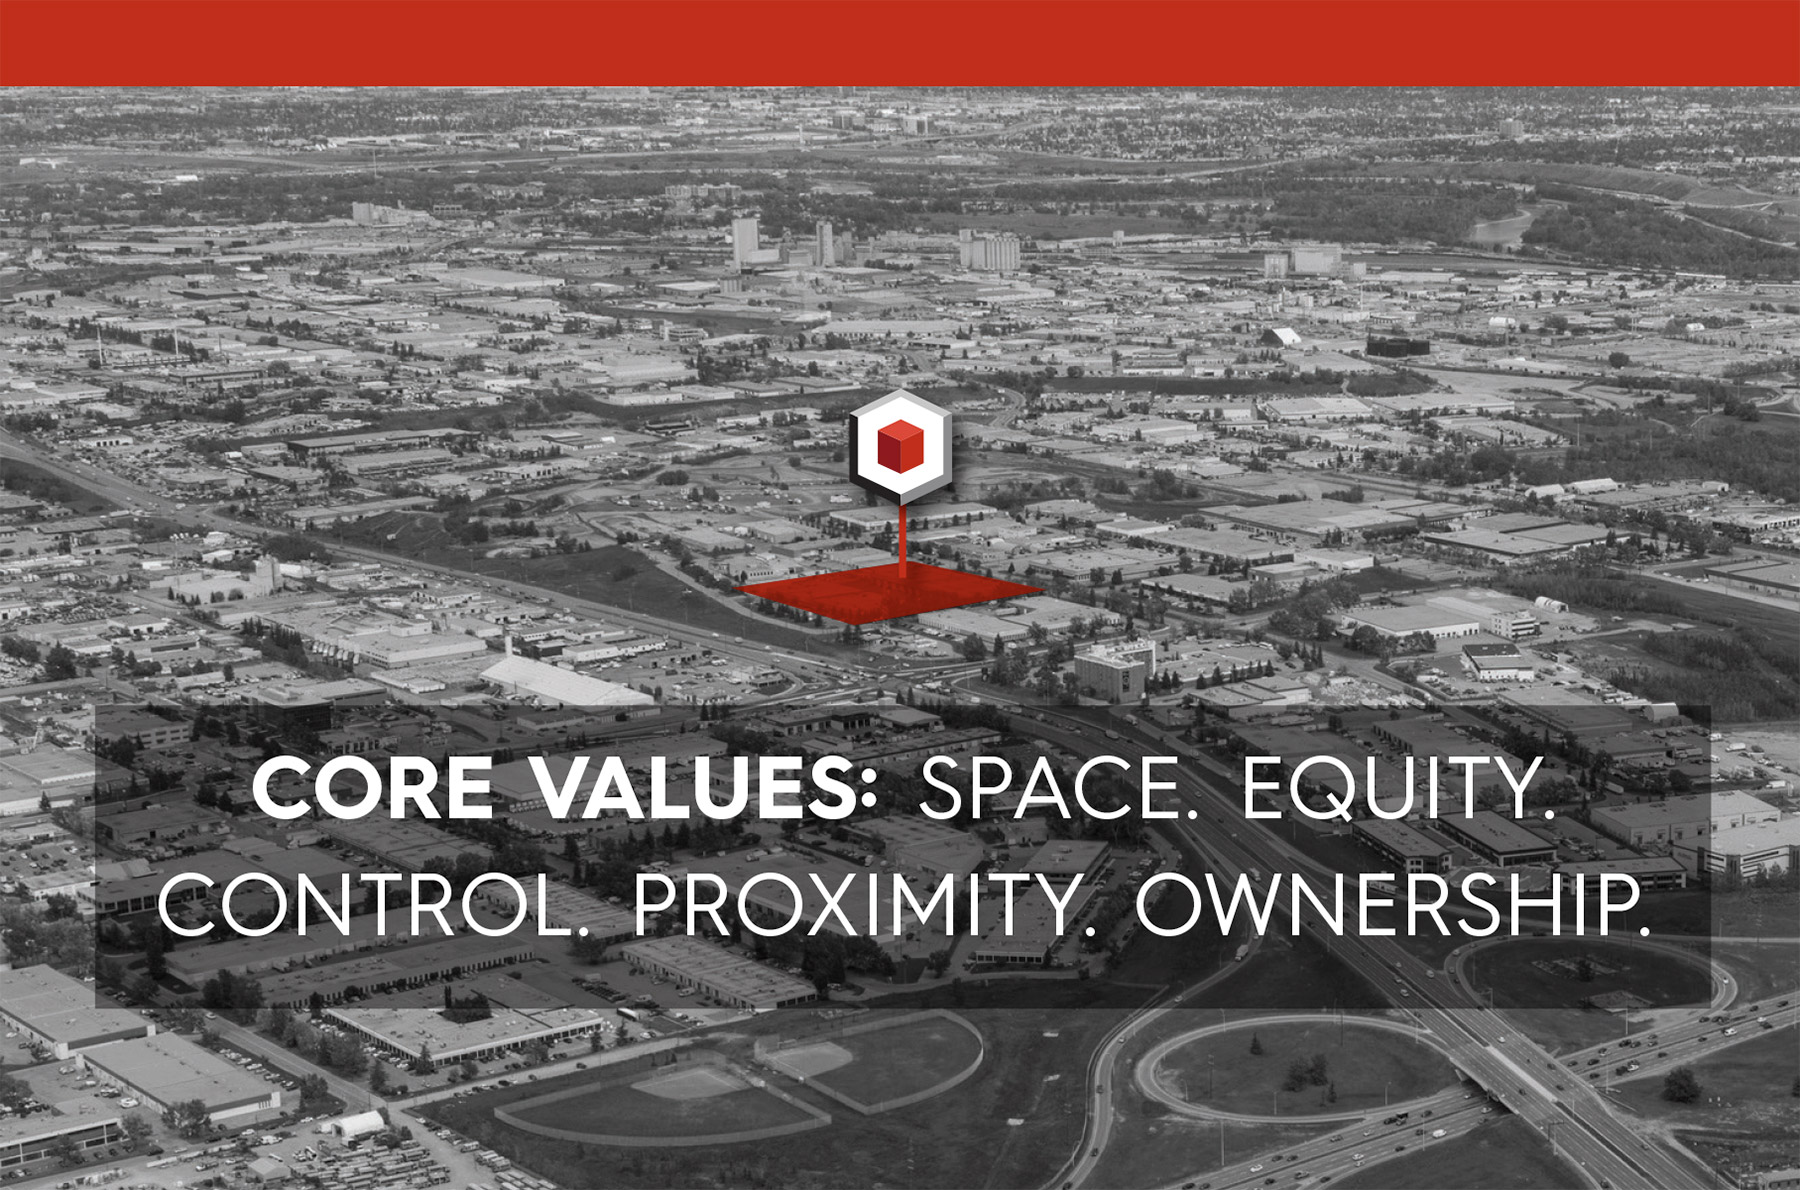 Core Values: Space. Equity. Control. Proximity. Ownership.